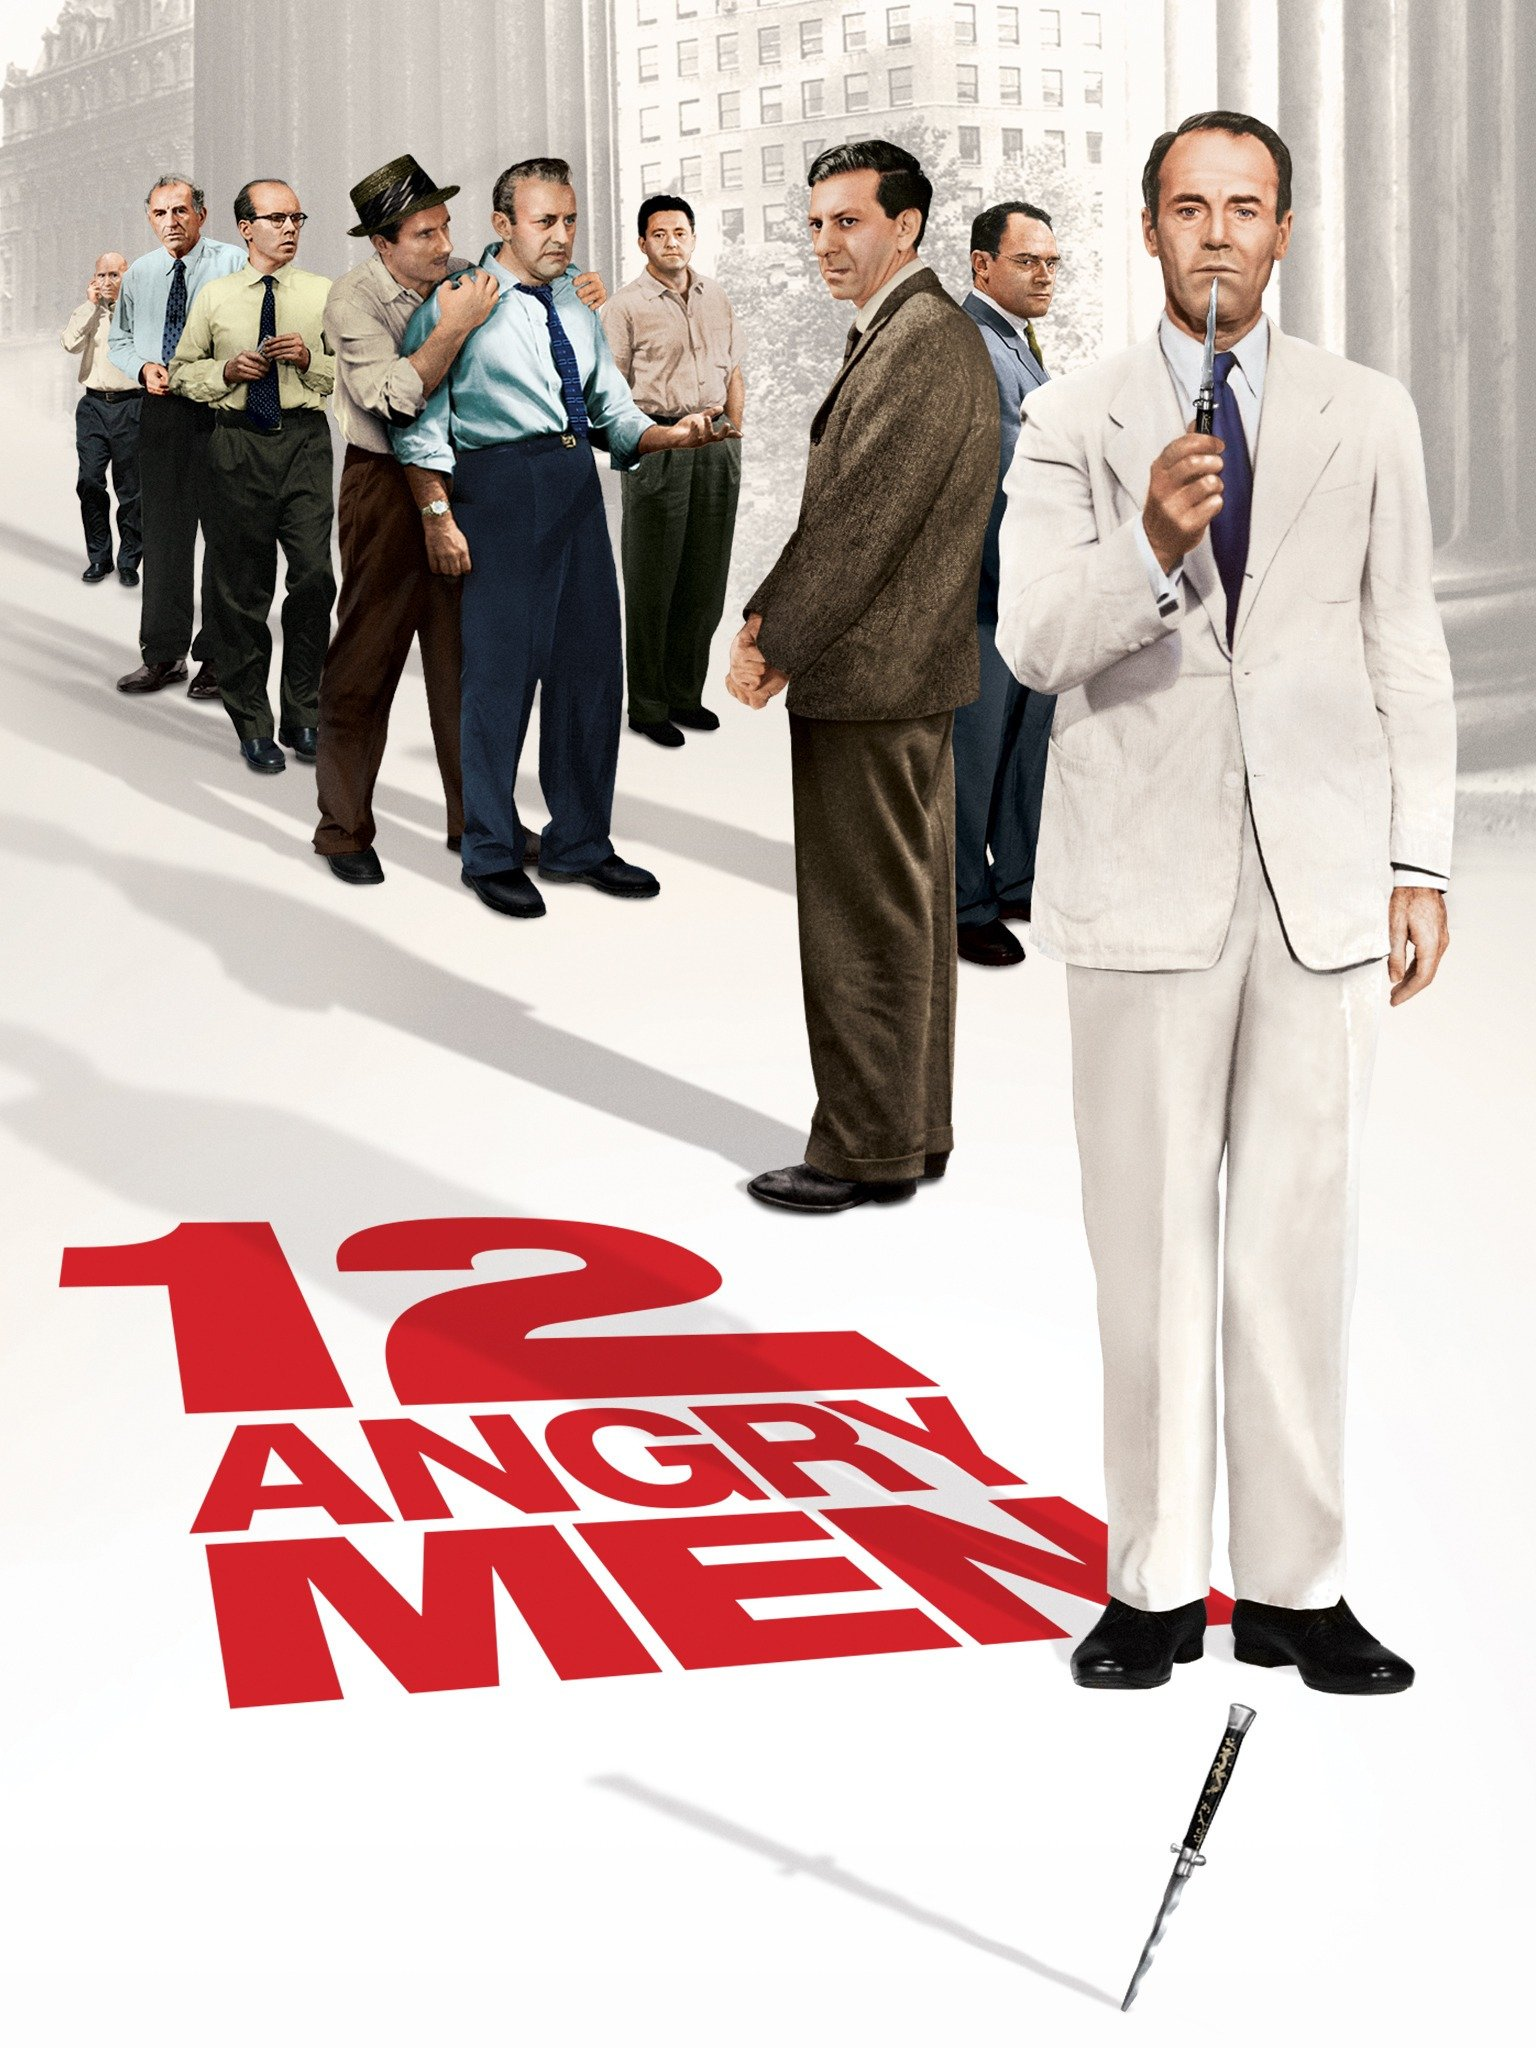 12 Angry Men  The 1957 Movie (Part 2)